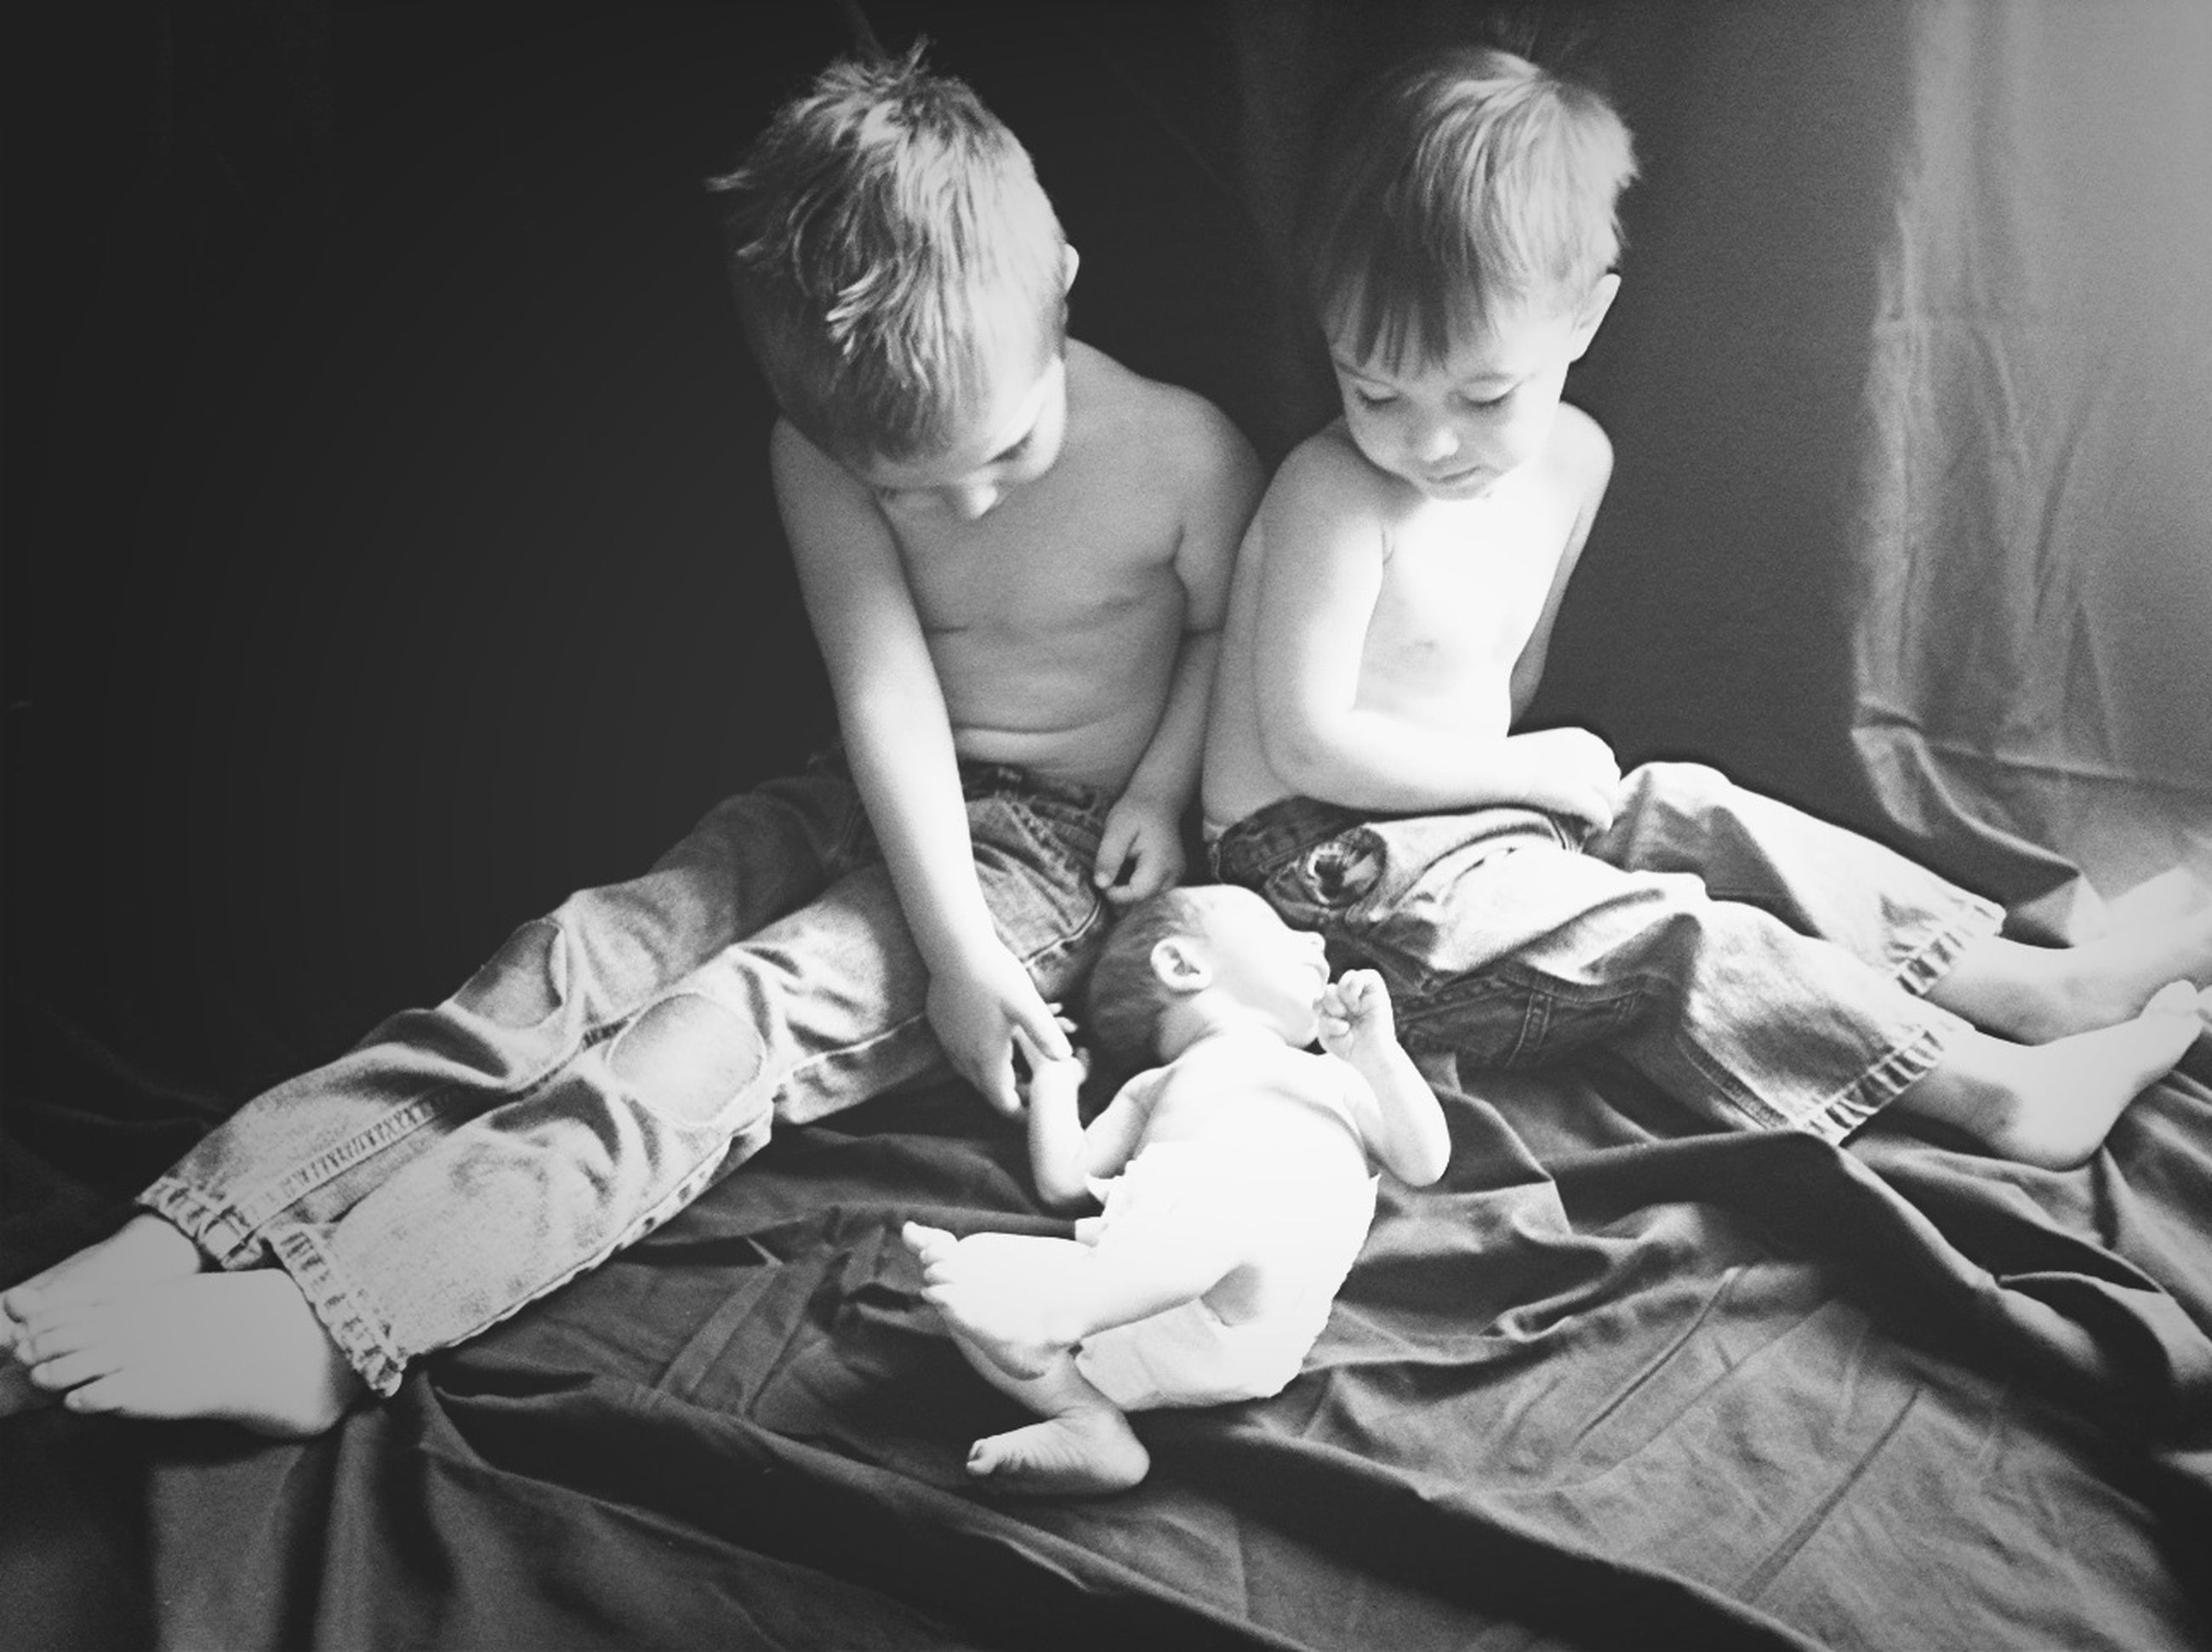 childhood, indoors, togetherness, bonding, lifestyles, person, casual clothing, love, boys, elementary age, leisure activity, holding, innocence, family, baby, sitting, toddler